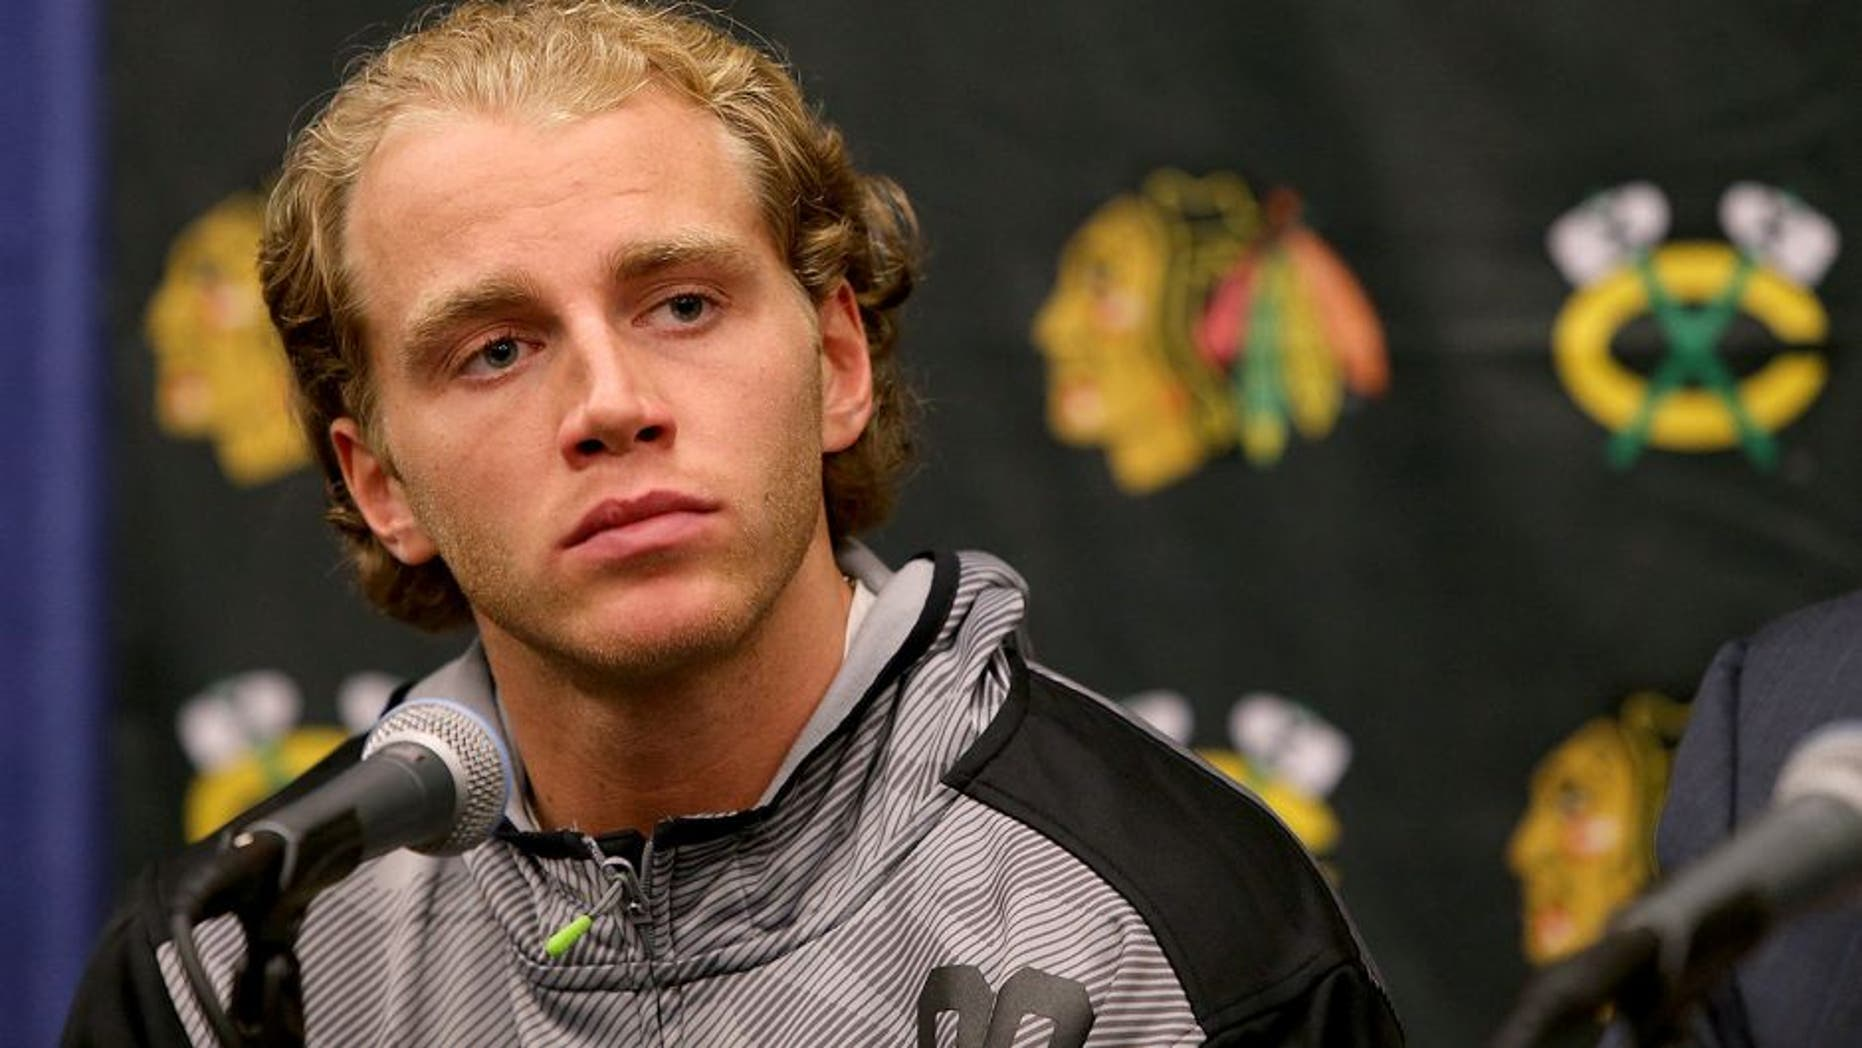 Patrick Kane is seen at a press conference before the start of the Chicago Blackhawks training camp on Thursday, Sept. 17, 2015, at the University of Notre Dame's Compton Family Ice Center in South Bend, Ind. (Antonio Perez/Chicago Tribune/TNS via Getty Images)